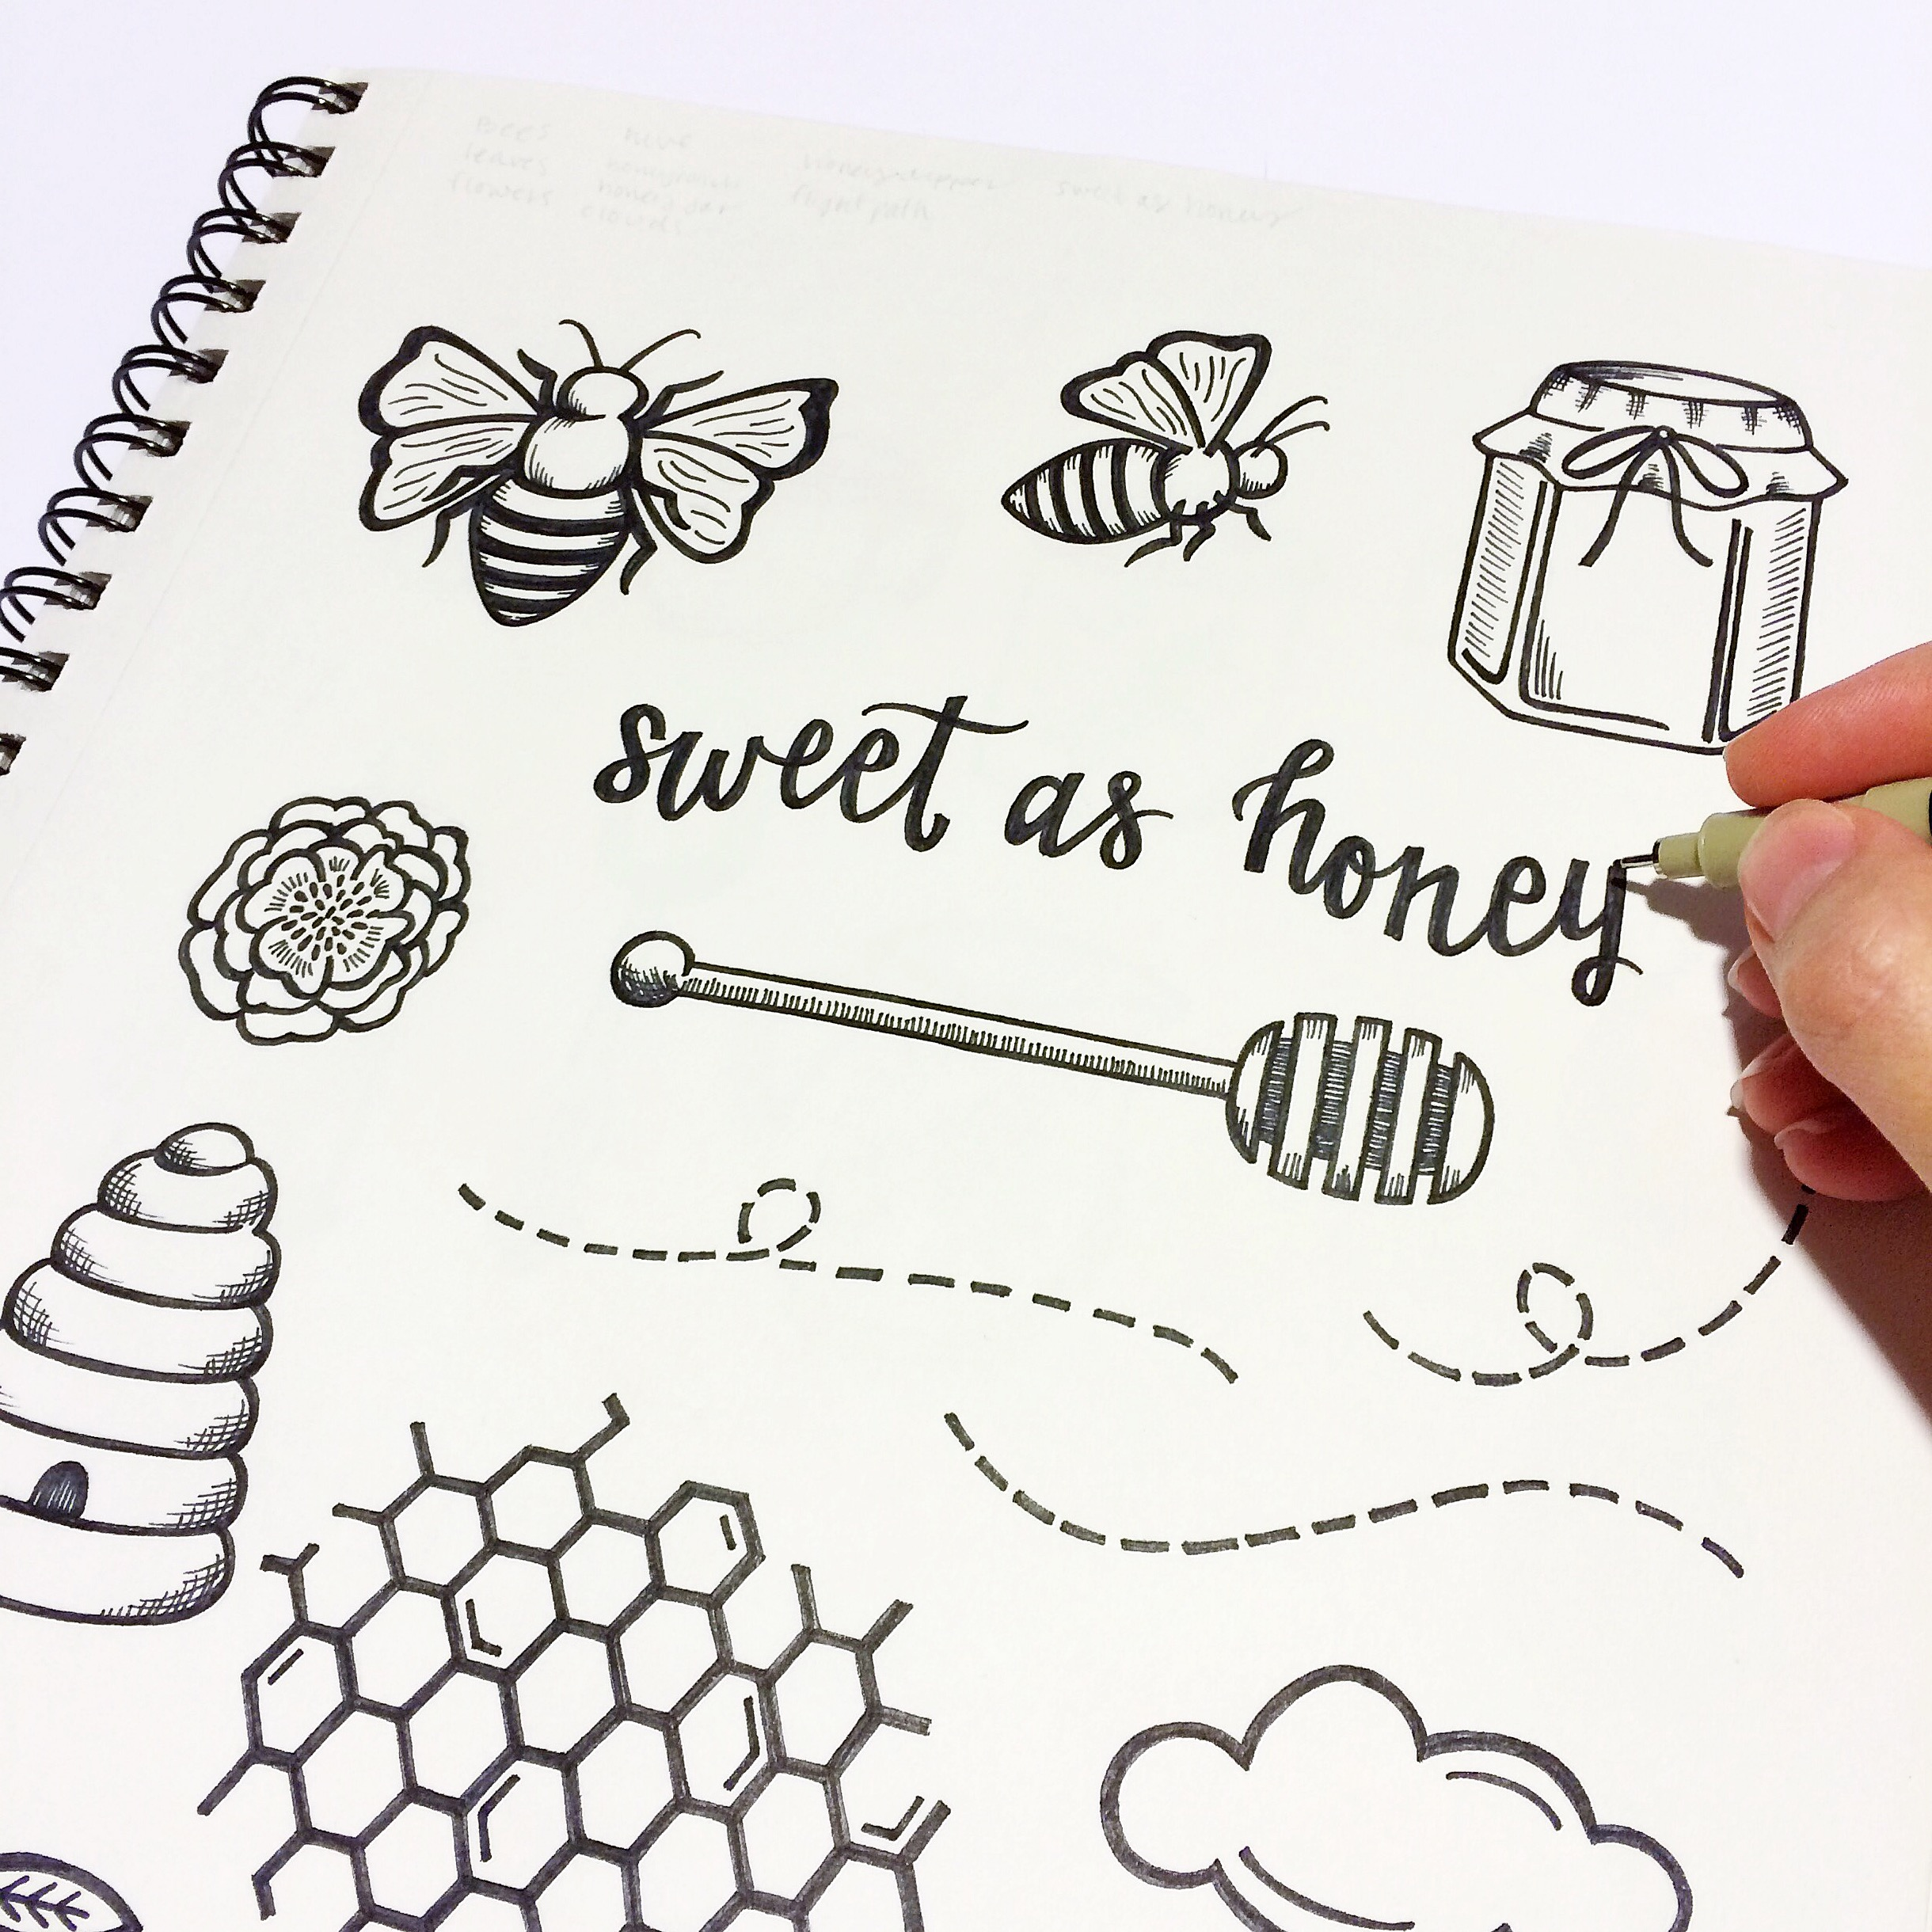 sweet as honey sketchbook.jpg